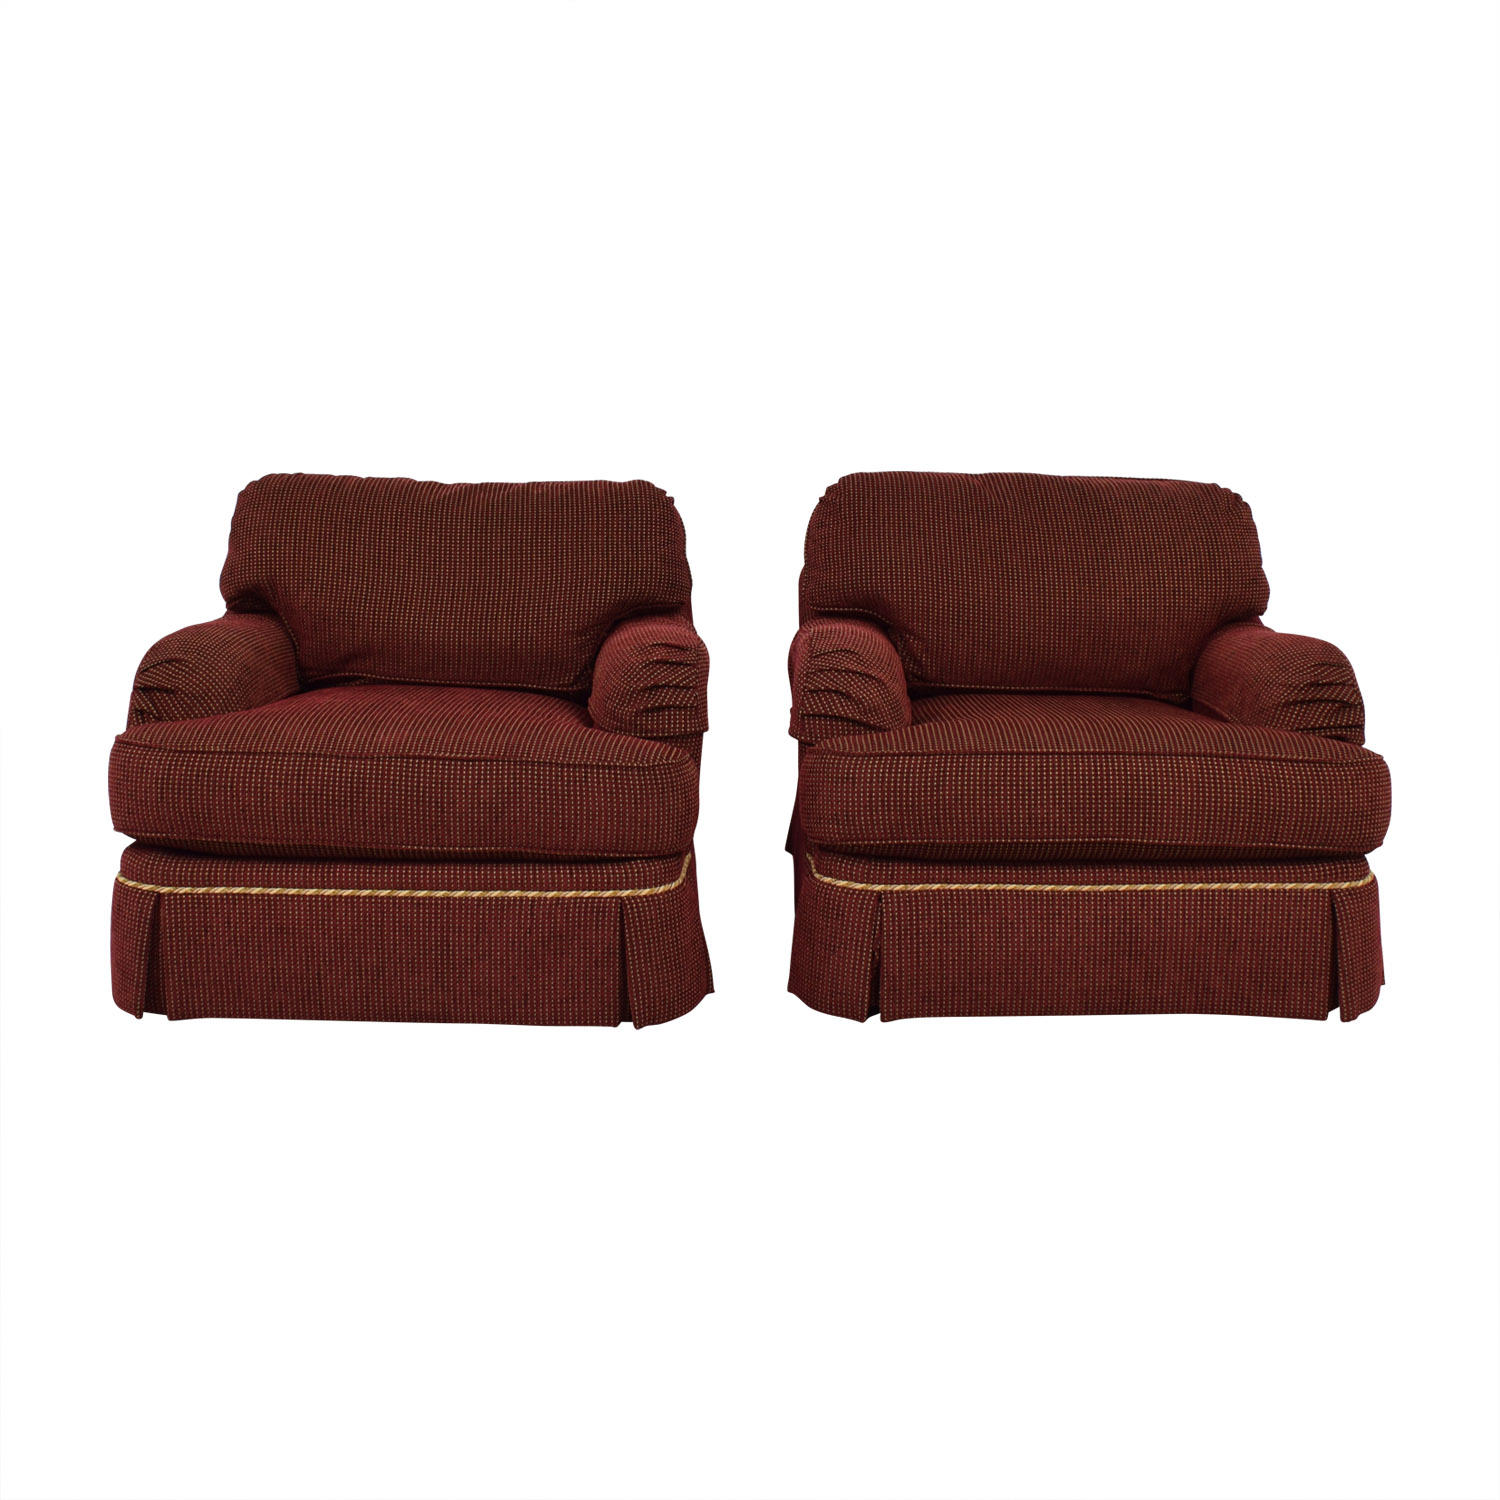 C.R. Lane C.R. Lane Burgundy and Beige Lounge Chairs Accent Chairs